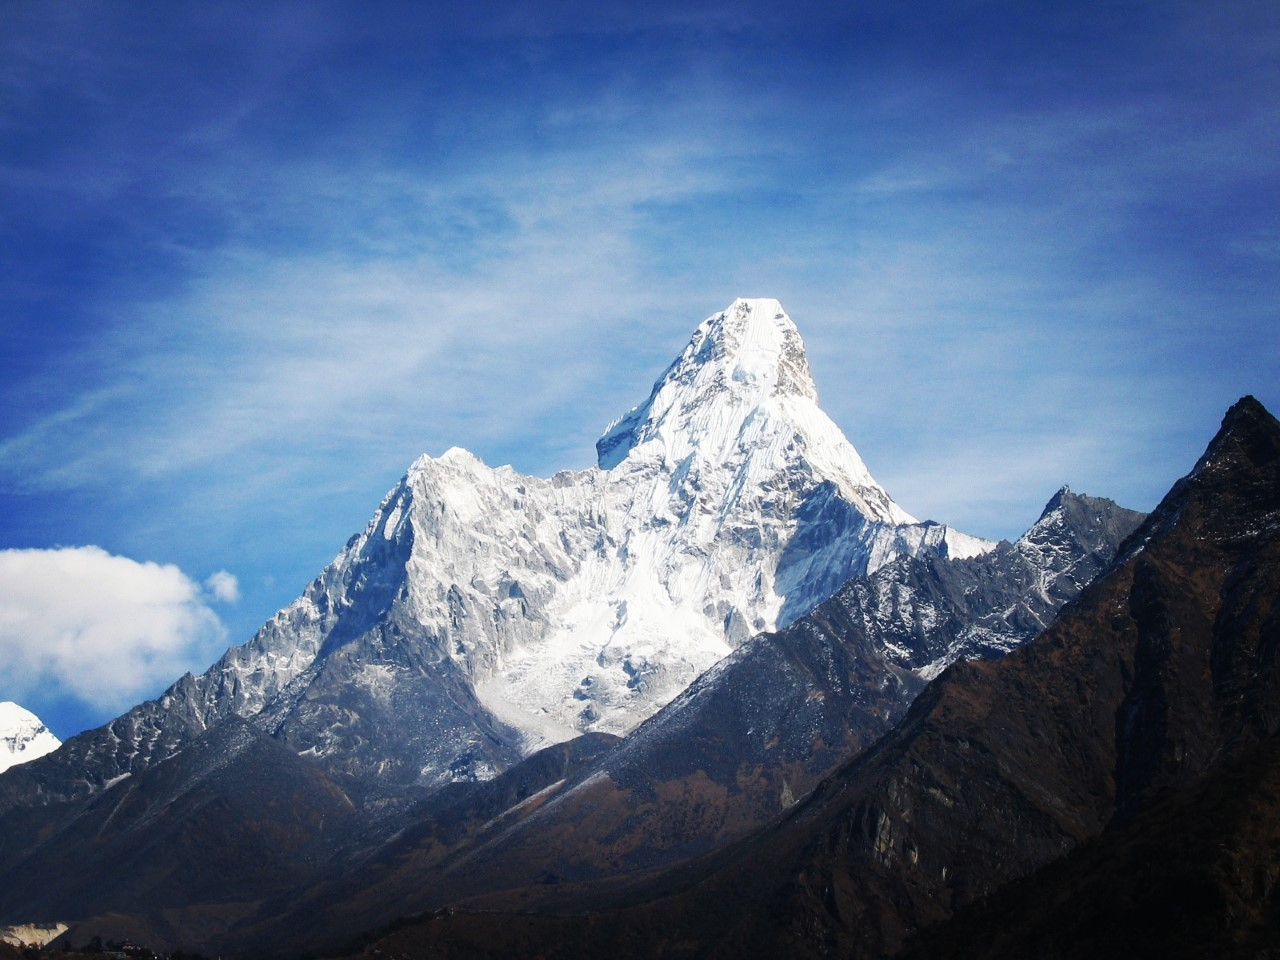 a picture of Ama dablam mountain covered with snow